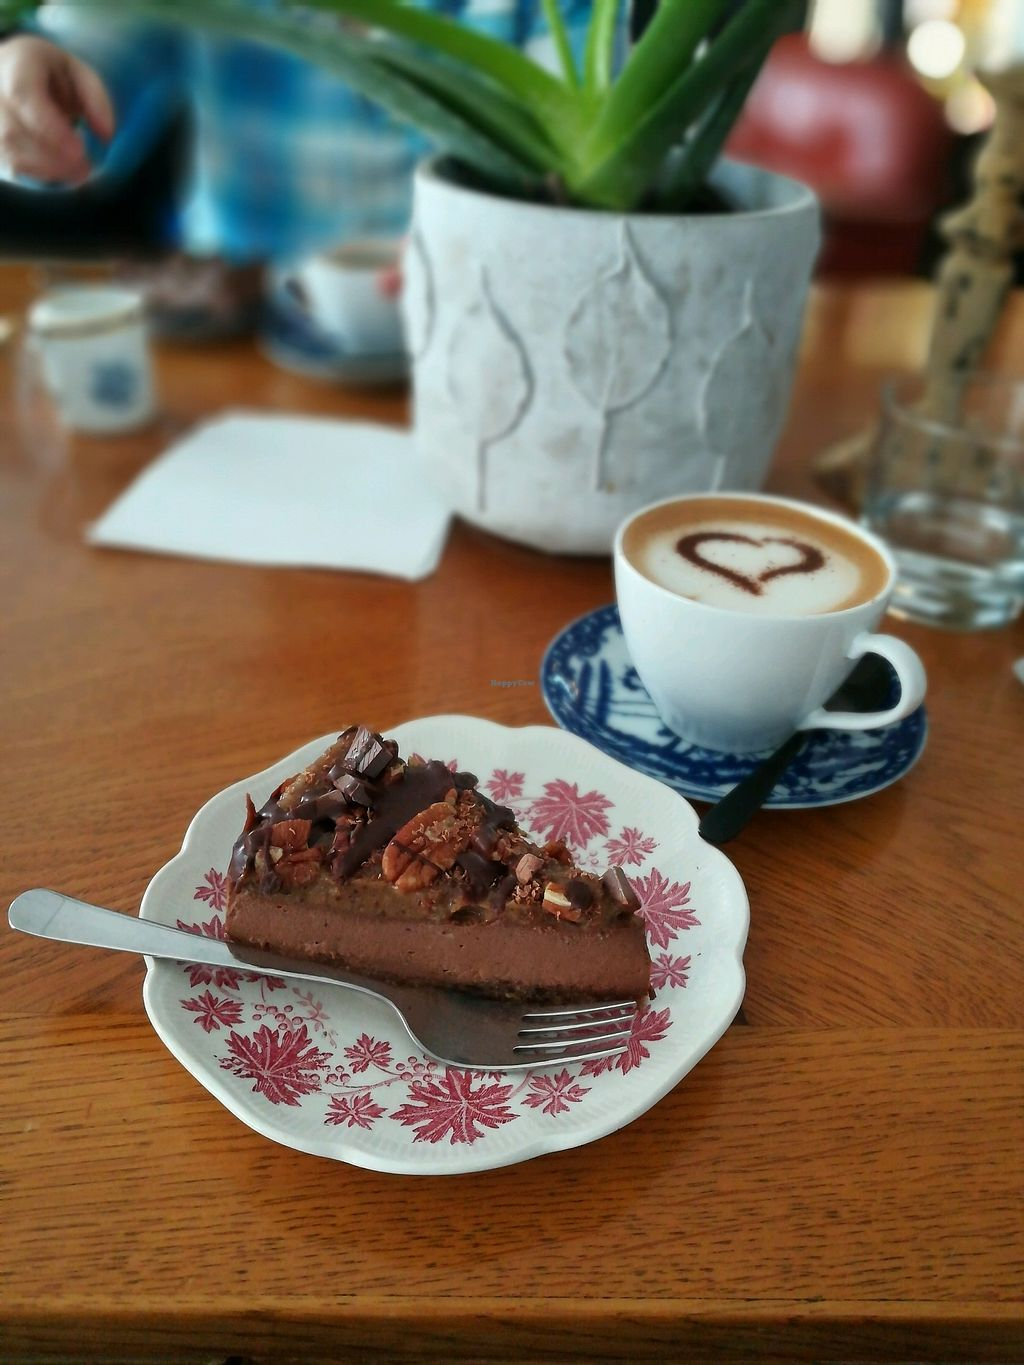 "Photo of Fruits and Yoga Cafe  by <a href=""/members/profile/Tobias94"">Tobias94</a> <br/>Raw cake with oat cappuccino <br/> March 9, 2018  - <a href='/contact/abuse/image/114063/368600'>Report</a>"